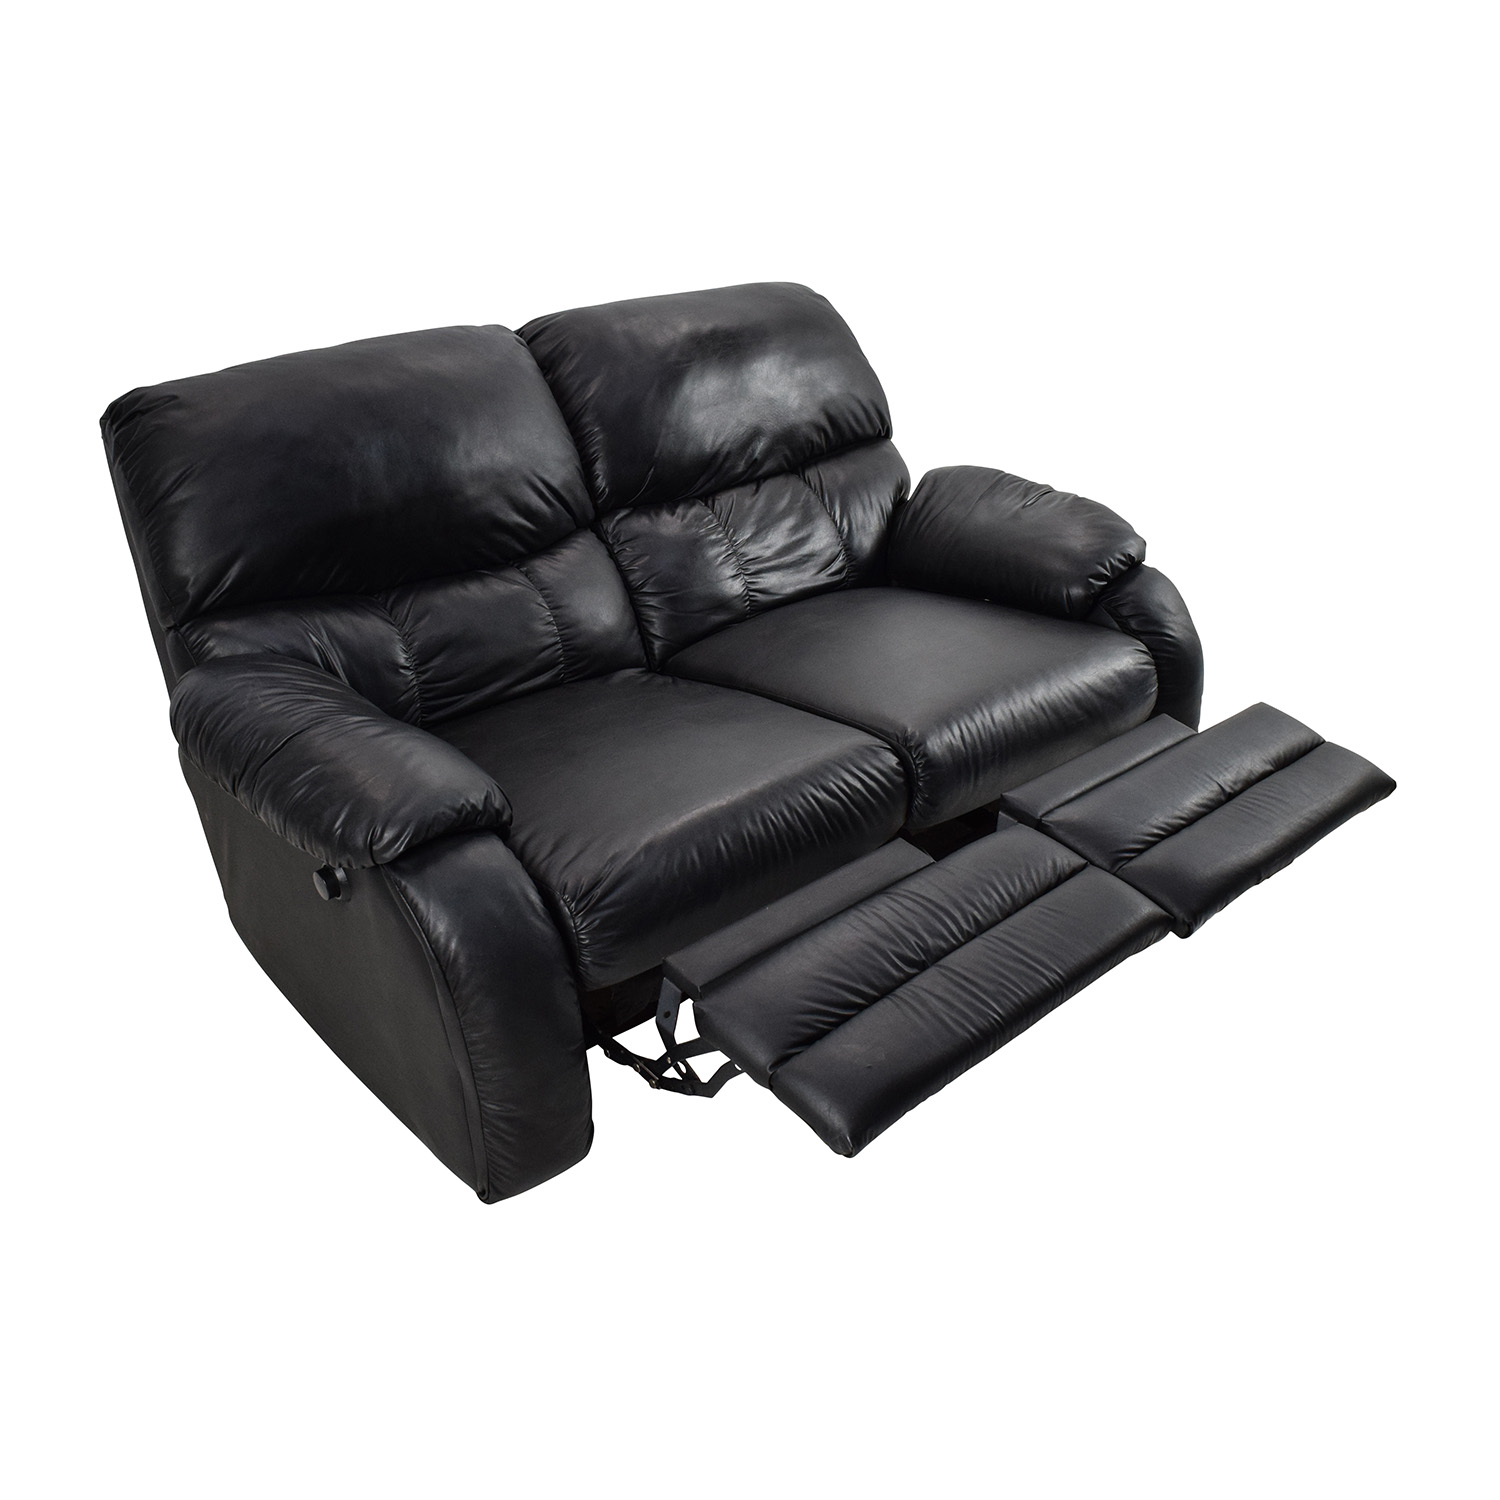 Buying A Second Hand Sofa Dfs Sofas Second Hand Household Furniture Buy And Sell